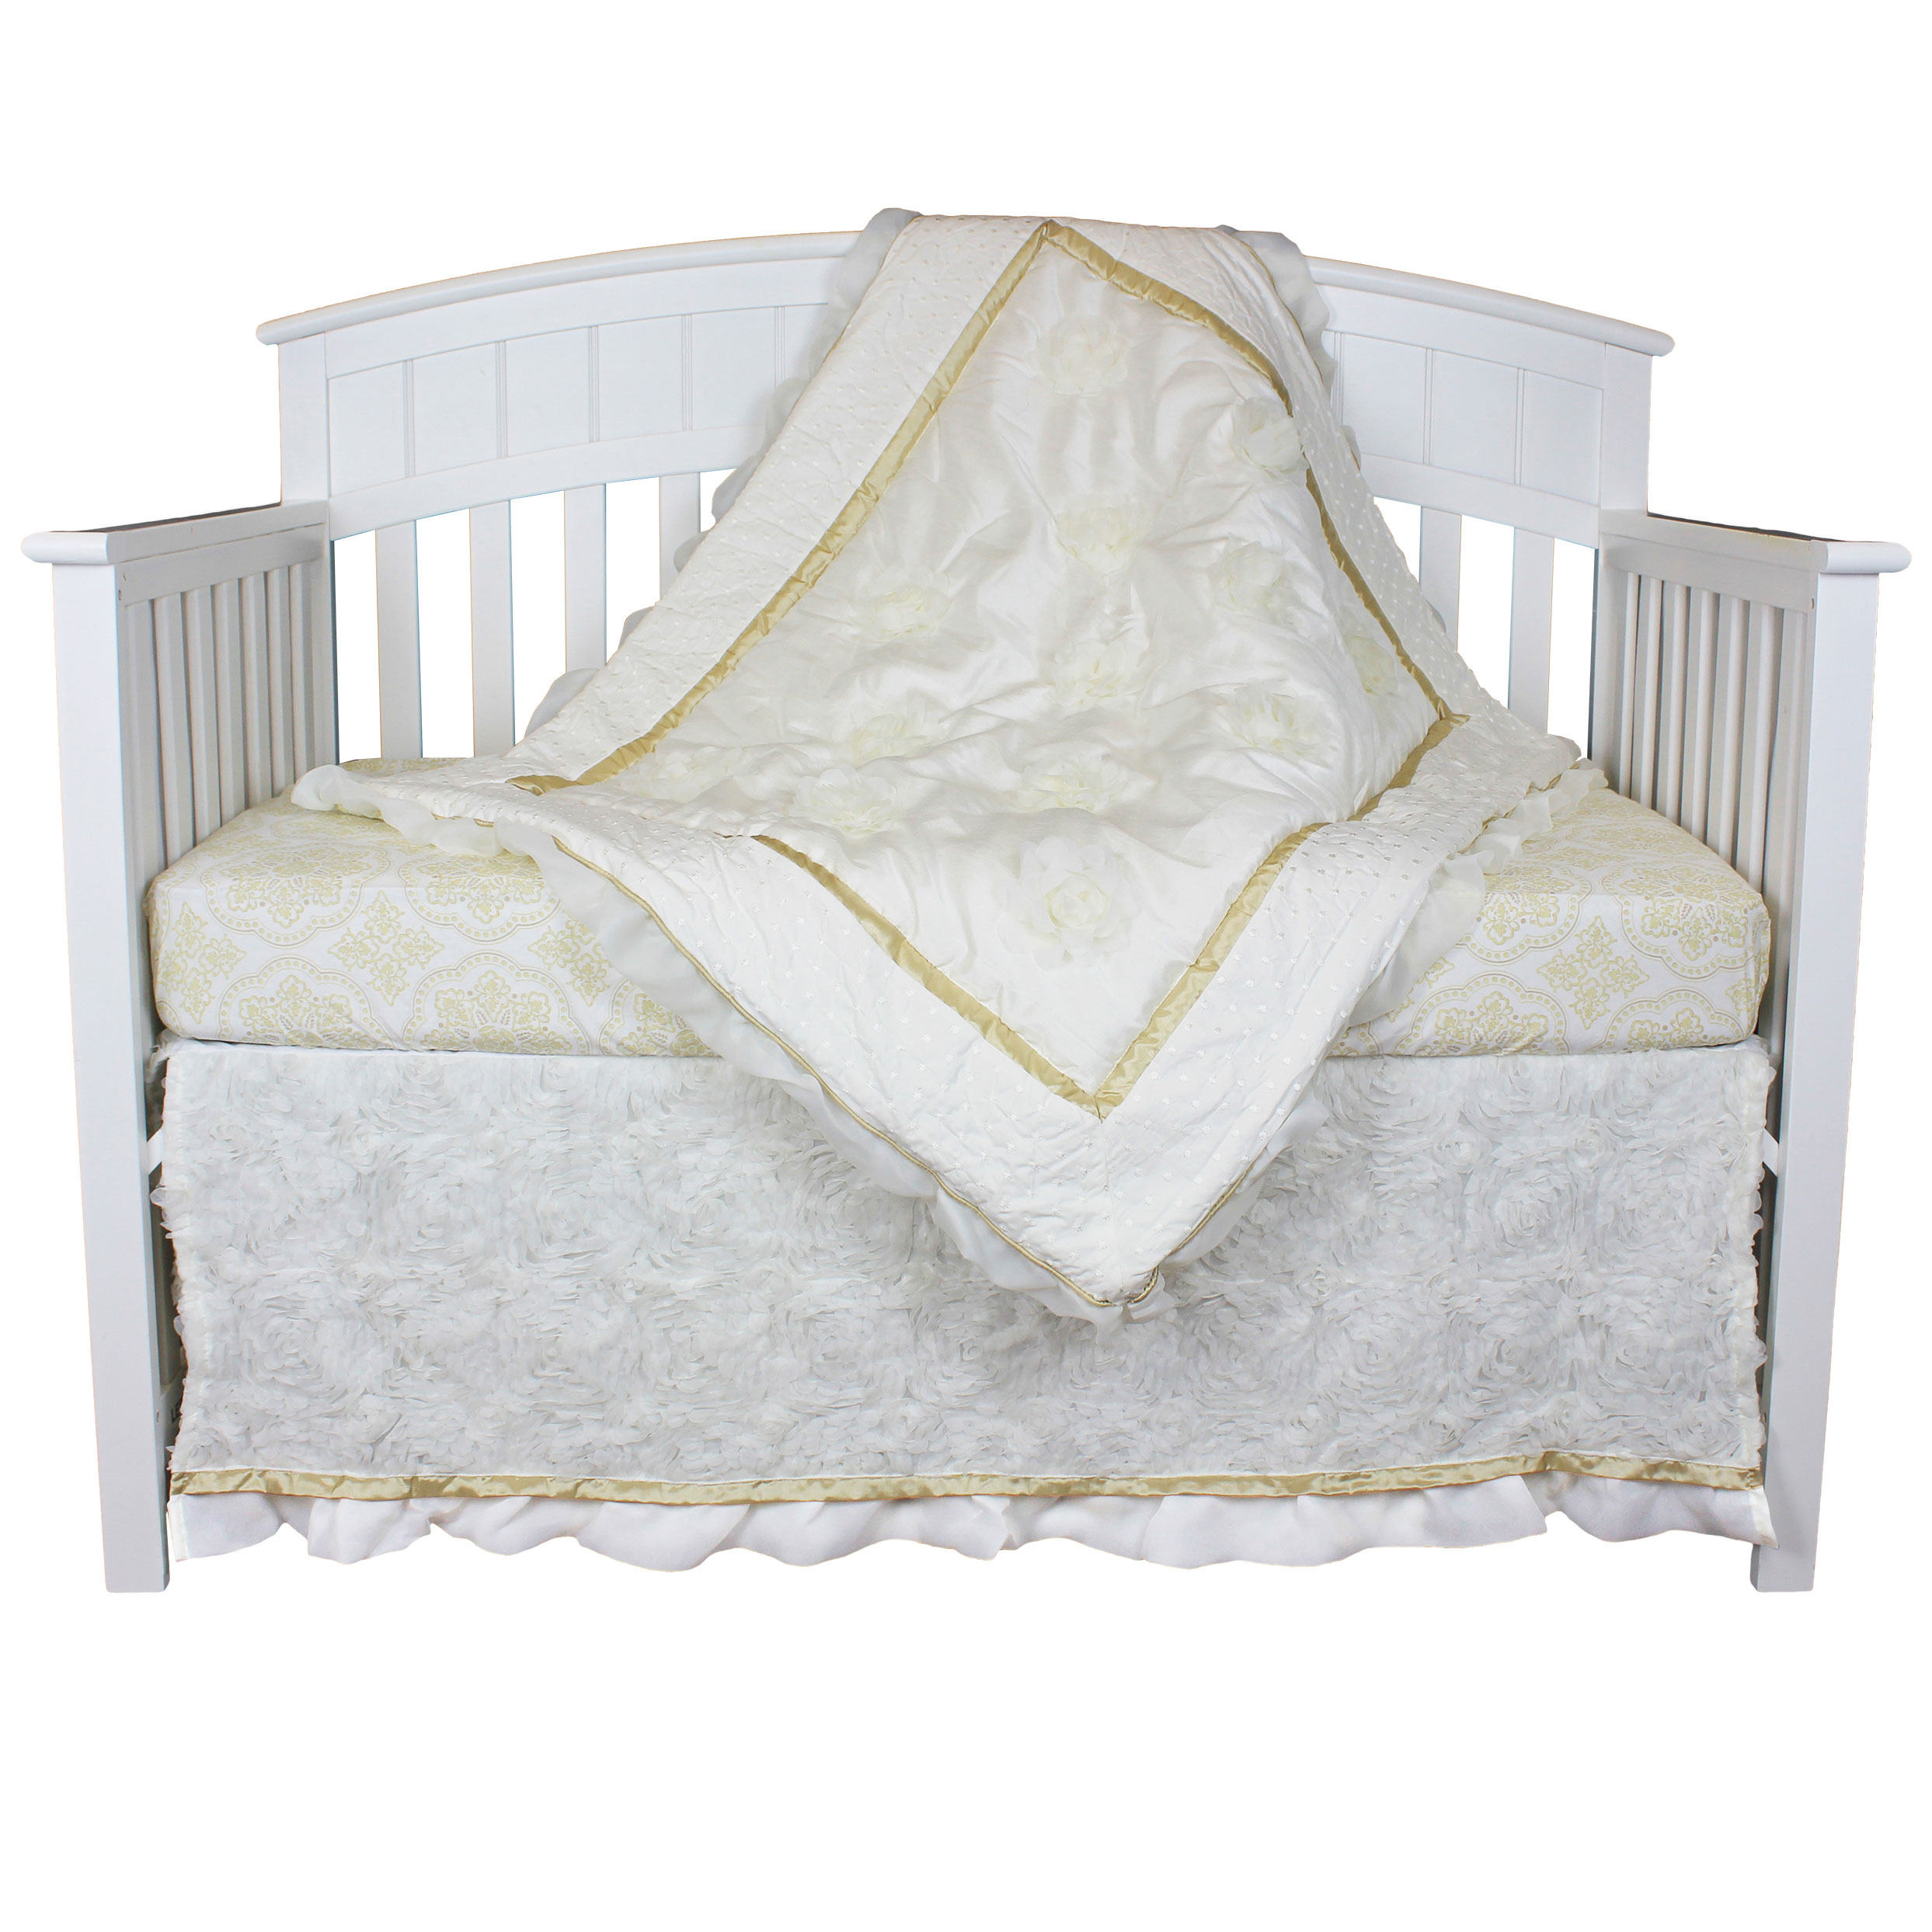 The Peanut Shell Crib Bedding Set - White, Ivory and Gold - Juliet Baby Girl Crib Bedding 4 Piece Collection